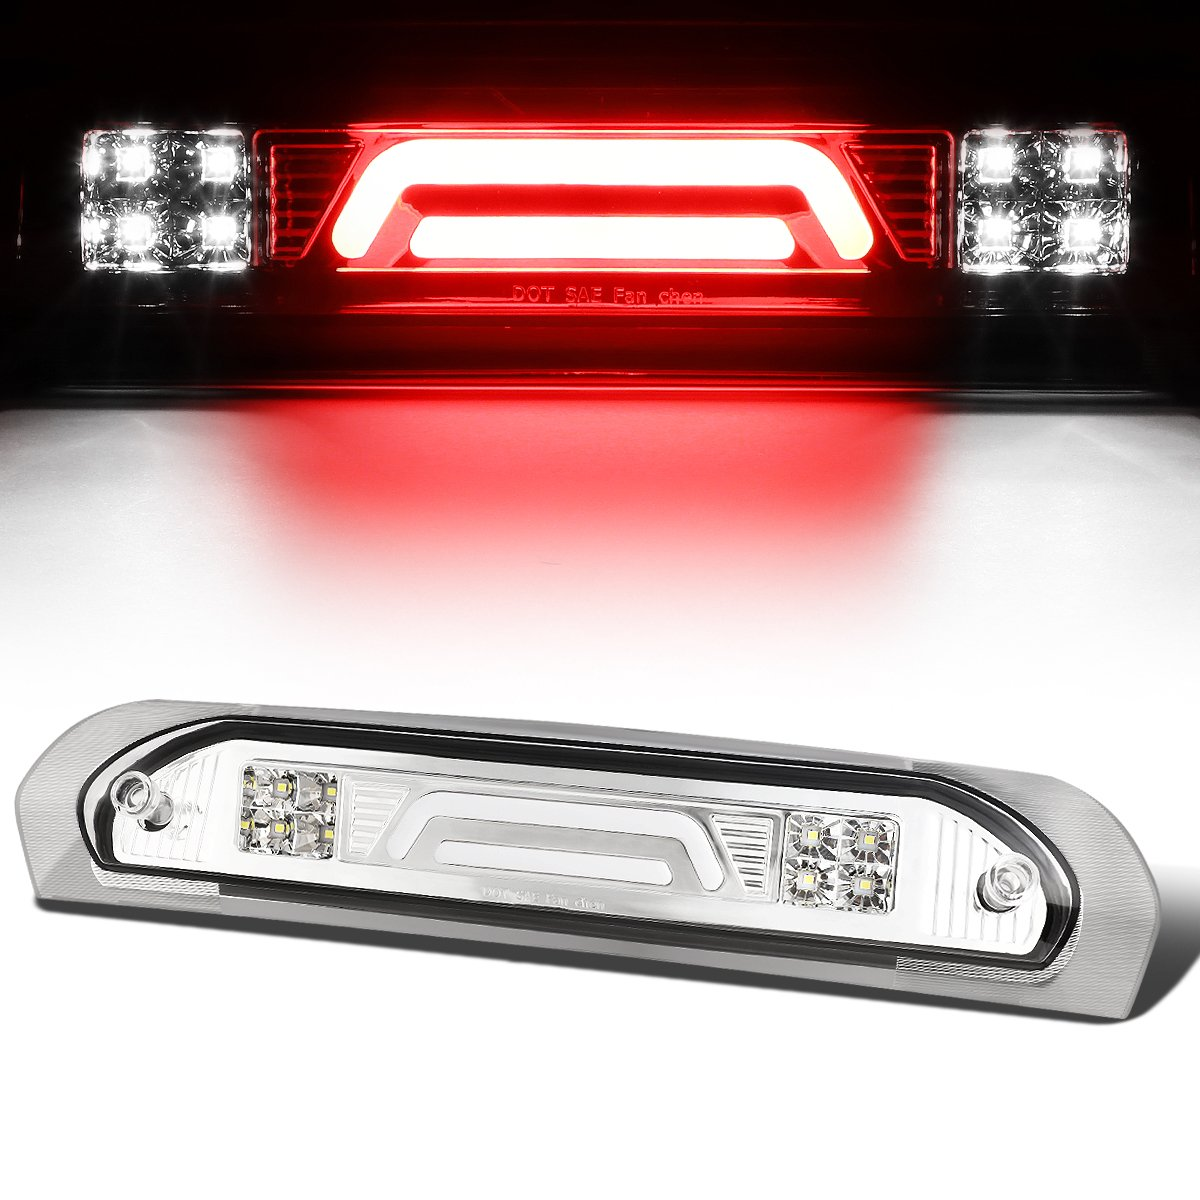 For 02-09 Dodge RAM Truck All 3D LED Bar 3rd Third Brake Light Rear Cargo Lamp (Black/Clear) Auto Dynasty